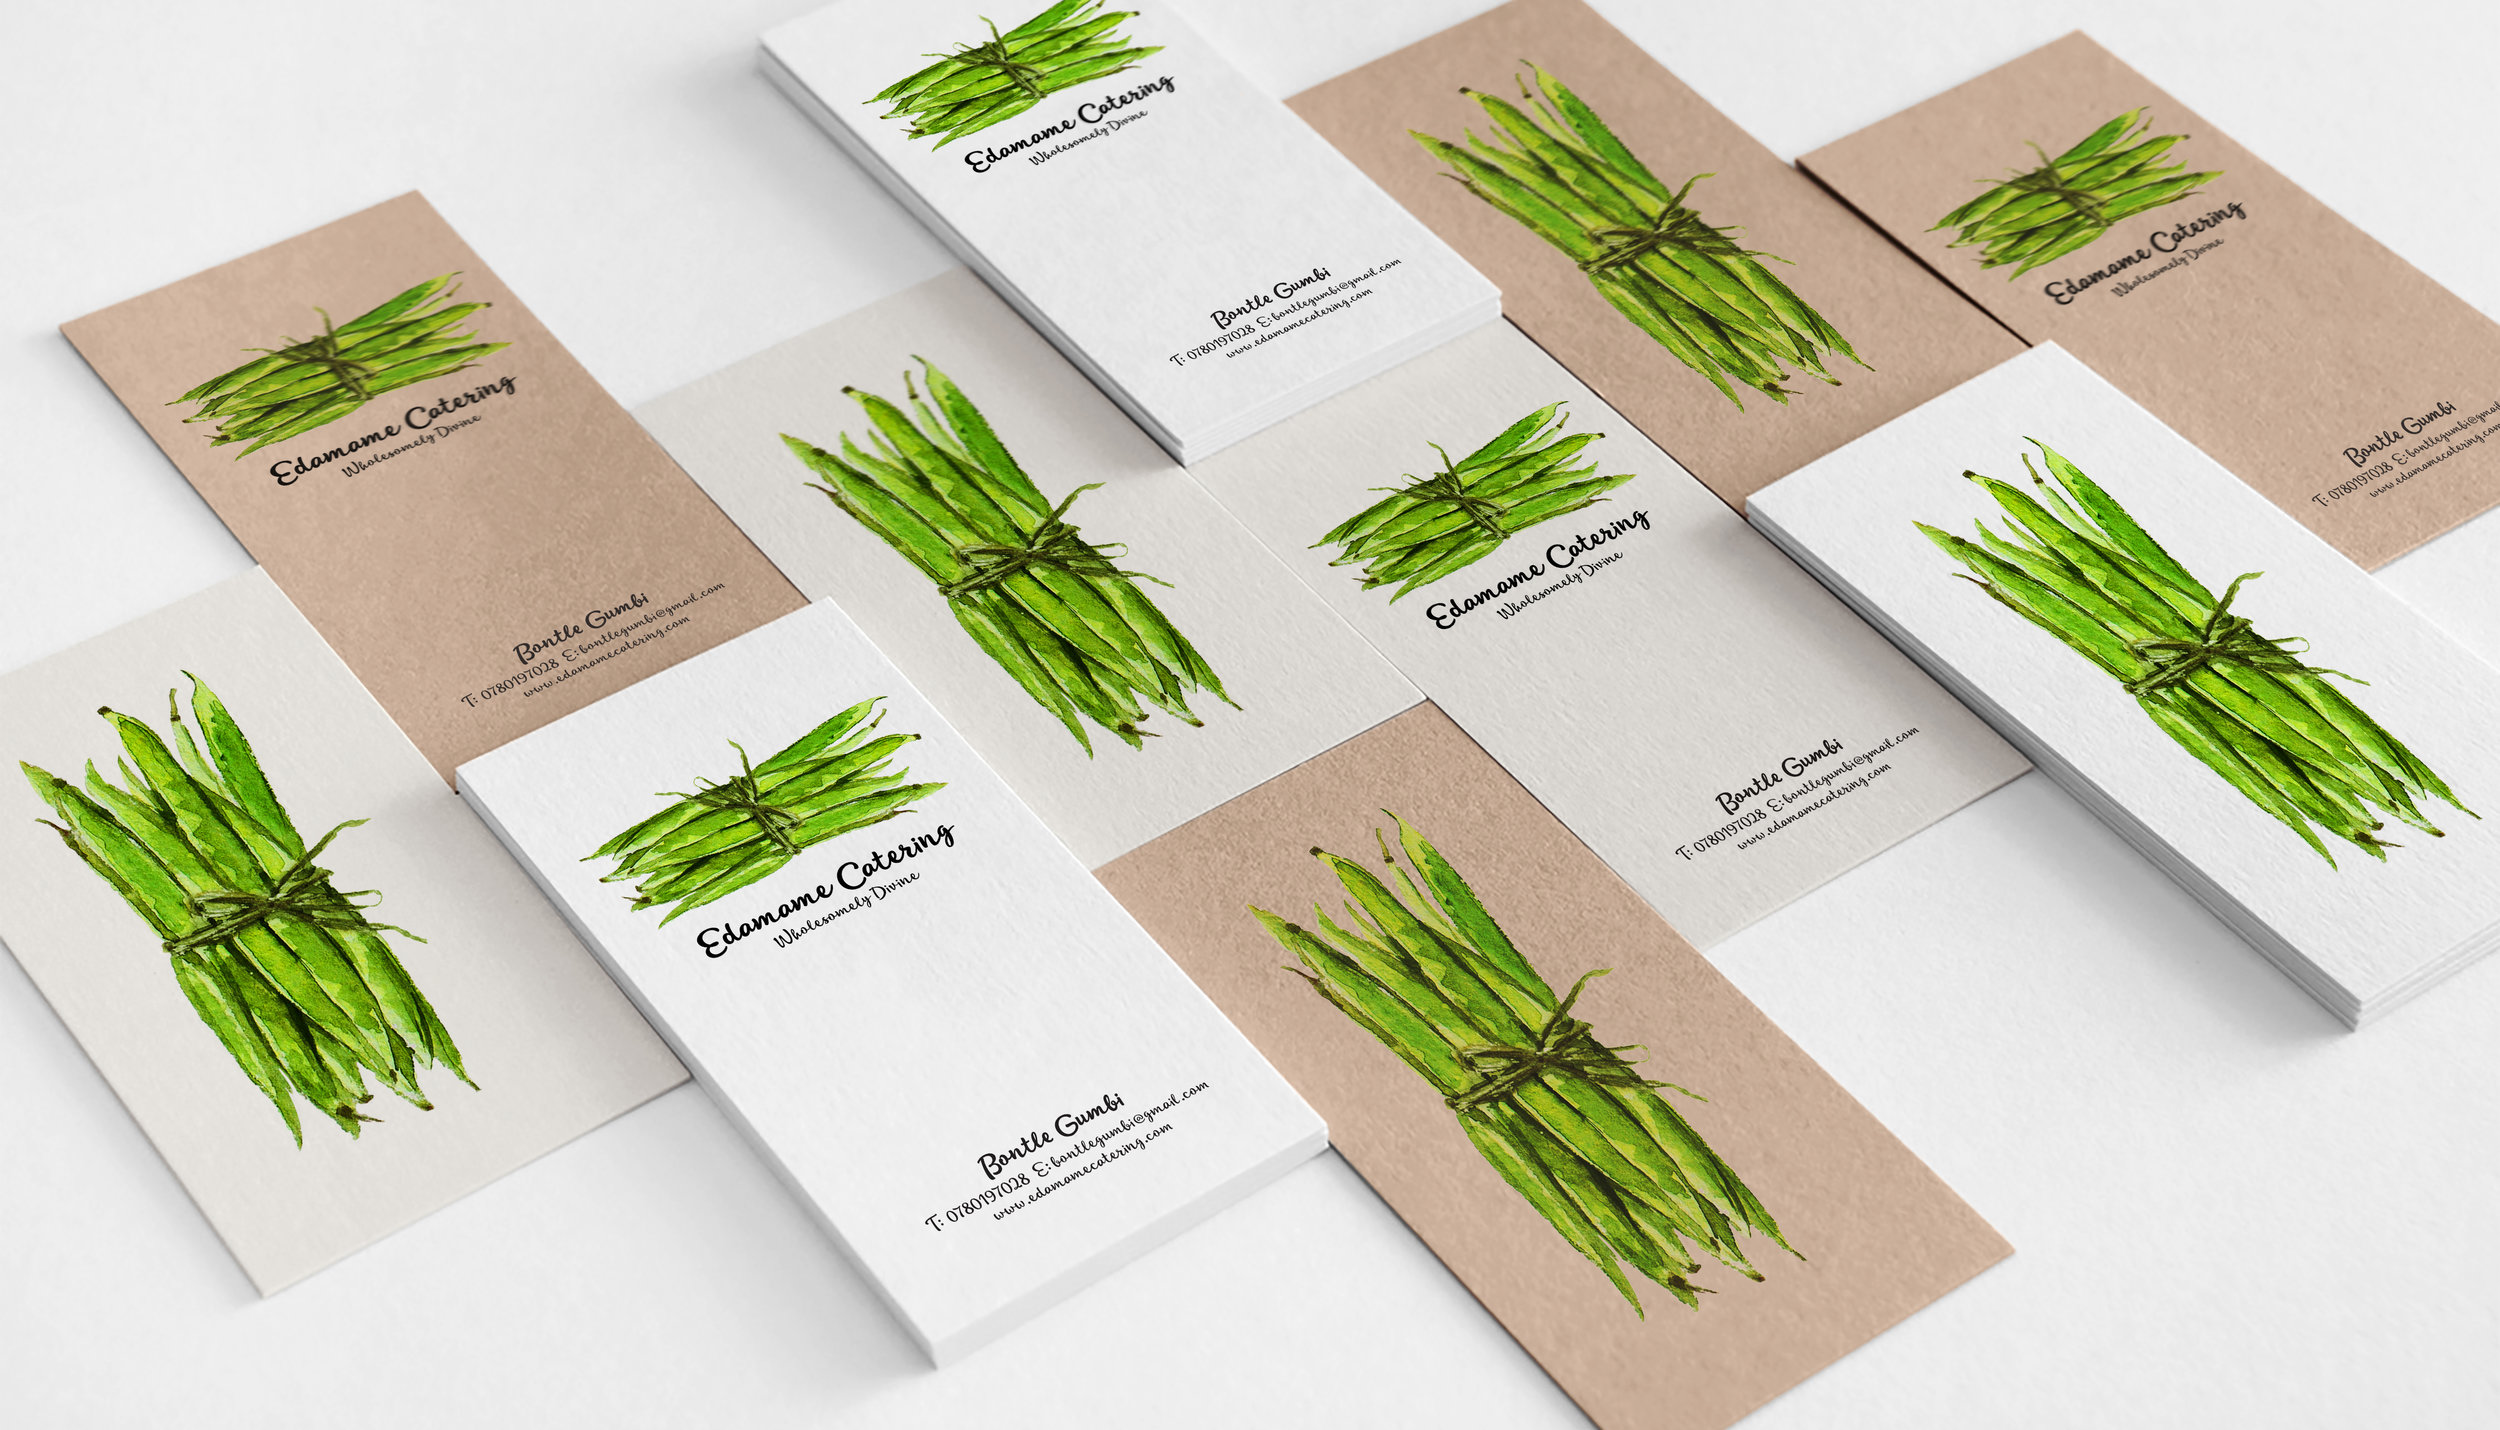 EDAMAME CATERING BRAND AND PACKAGING DESIGN — Brand Republica